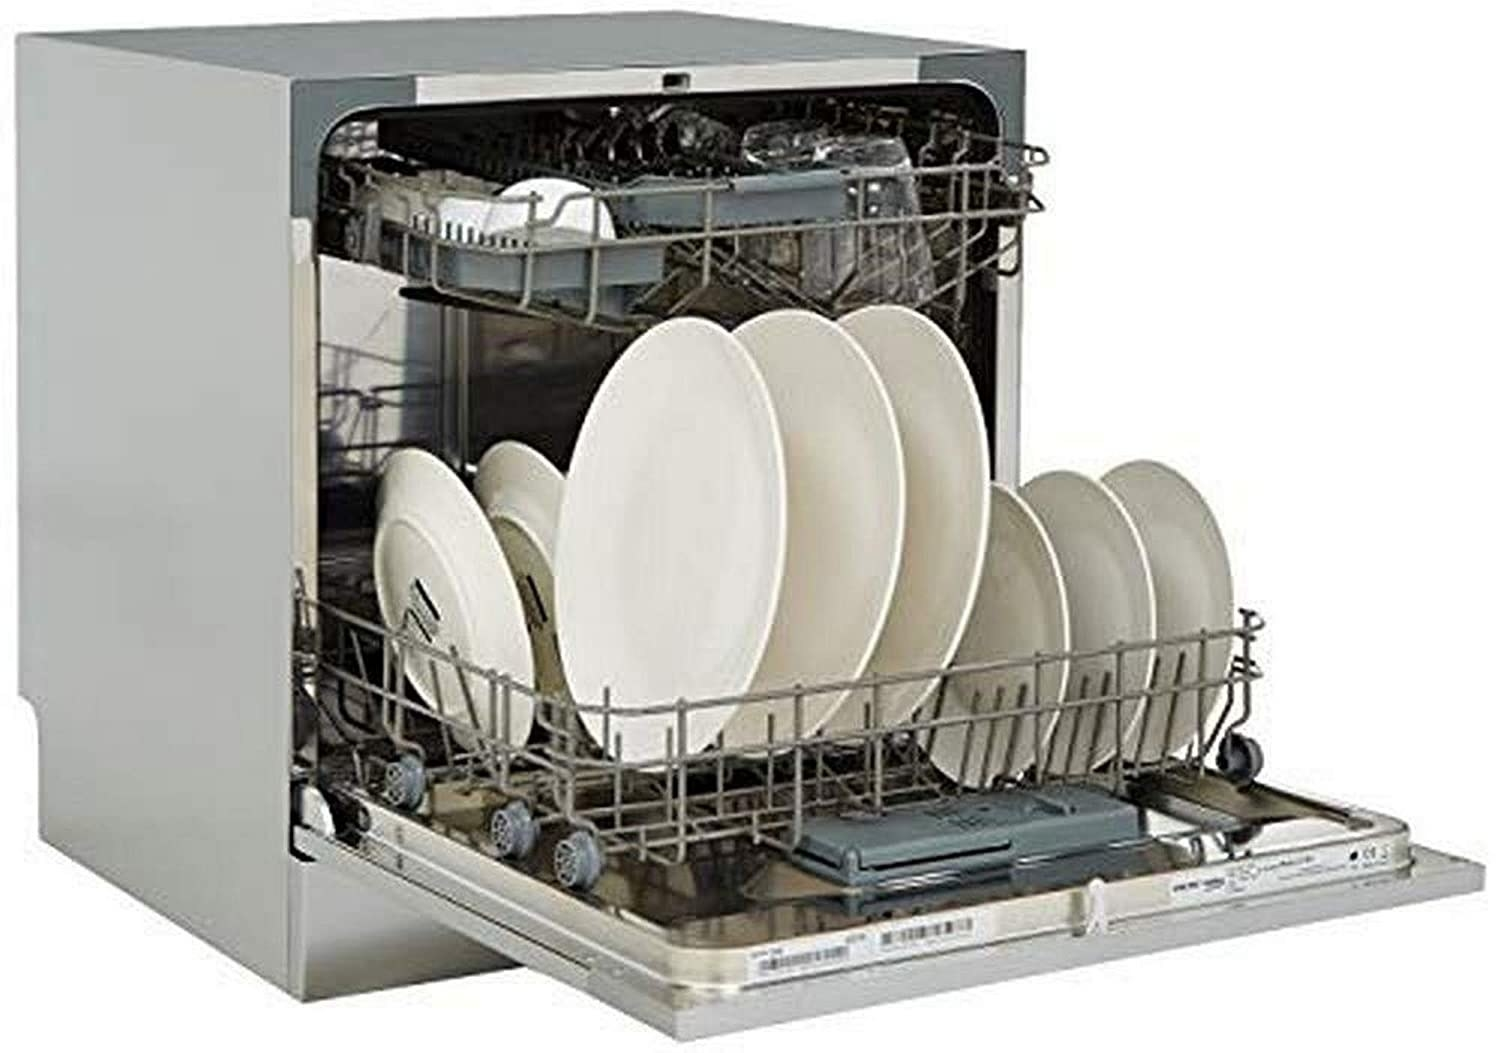 An open dishwasher in silver with multiple dishes inside it.